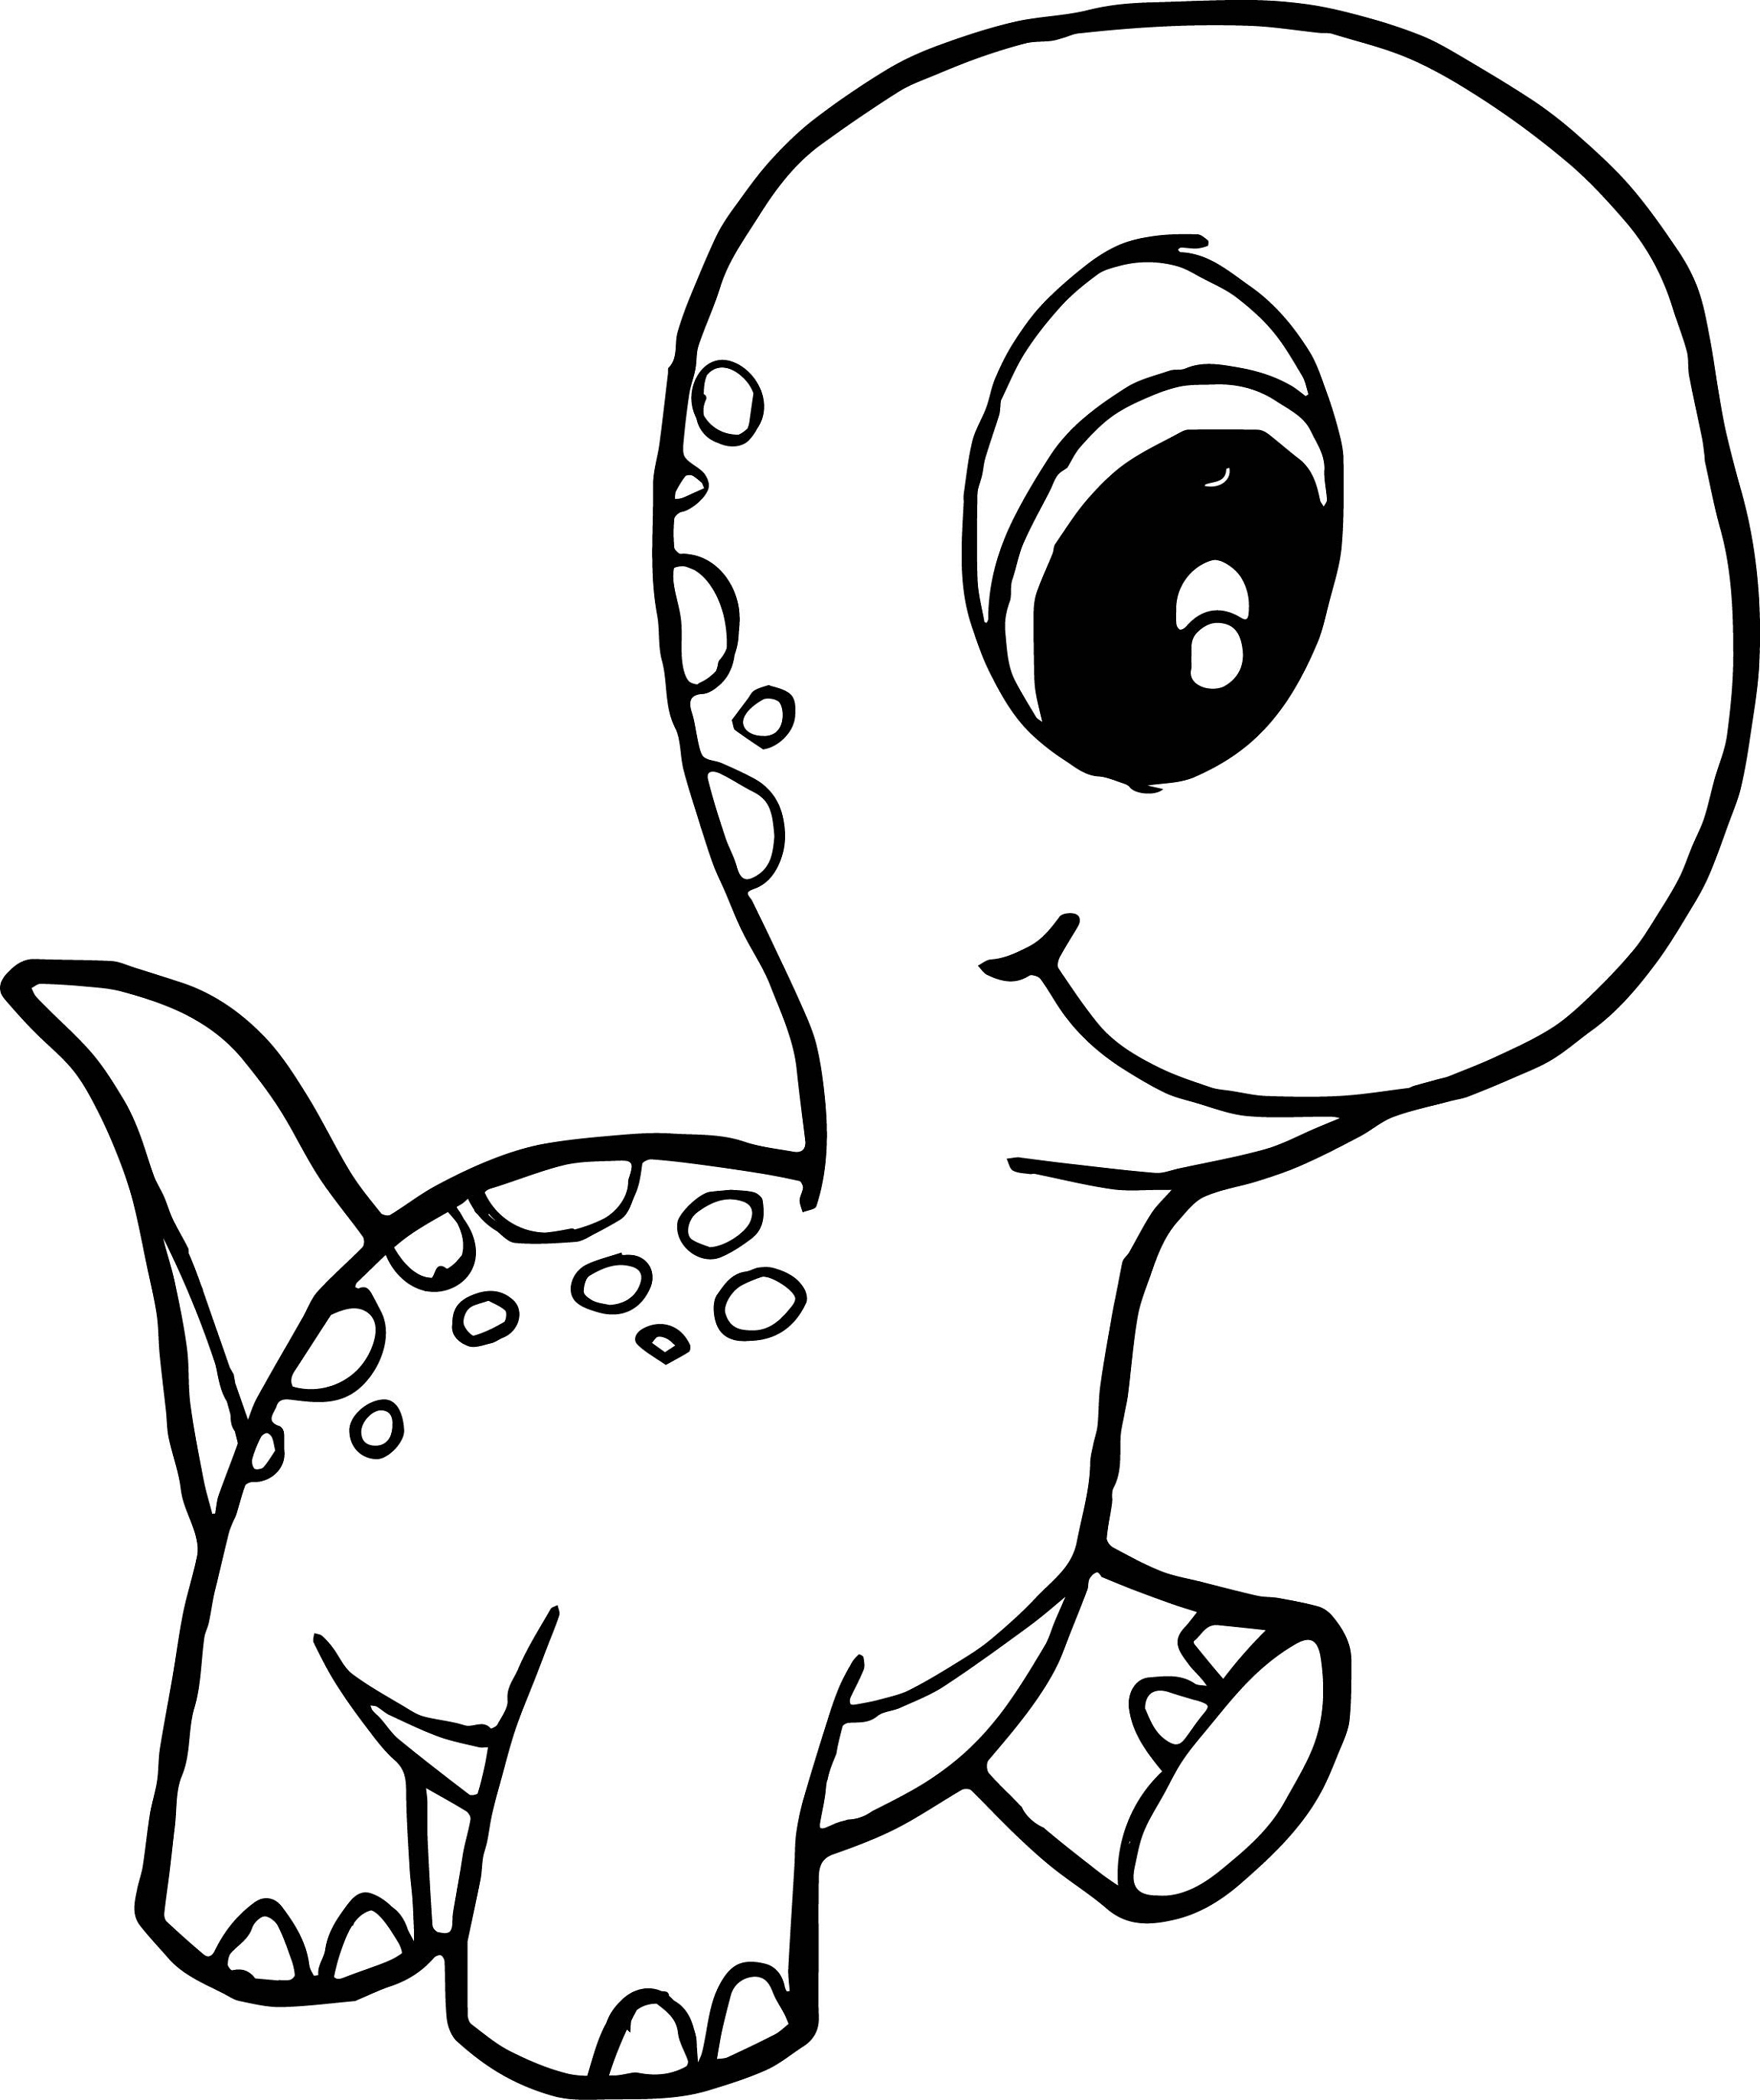 dinosaur to color the good dinosaur coloring pages disneyclipscom dinosaur color to